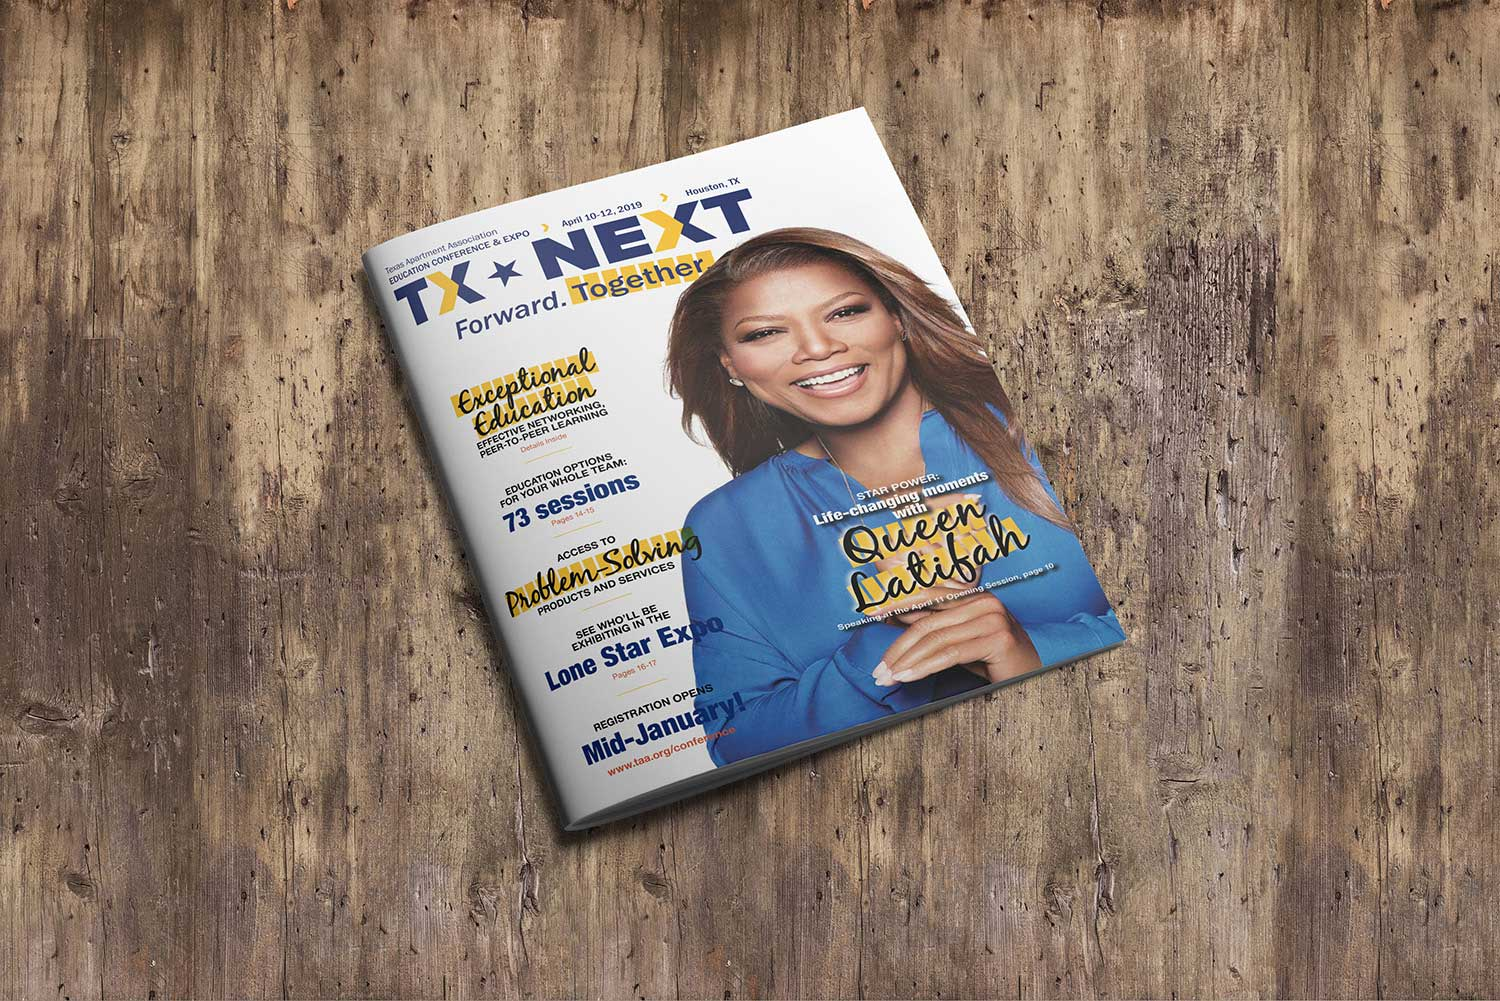 Texas Apartment Association annual event program cover with Queen Latifah